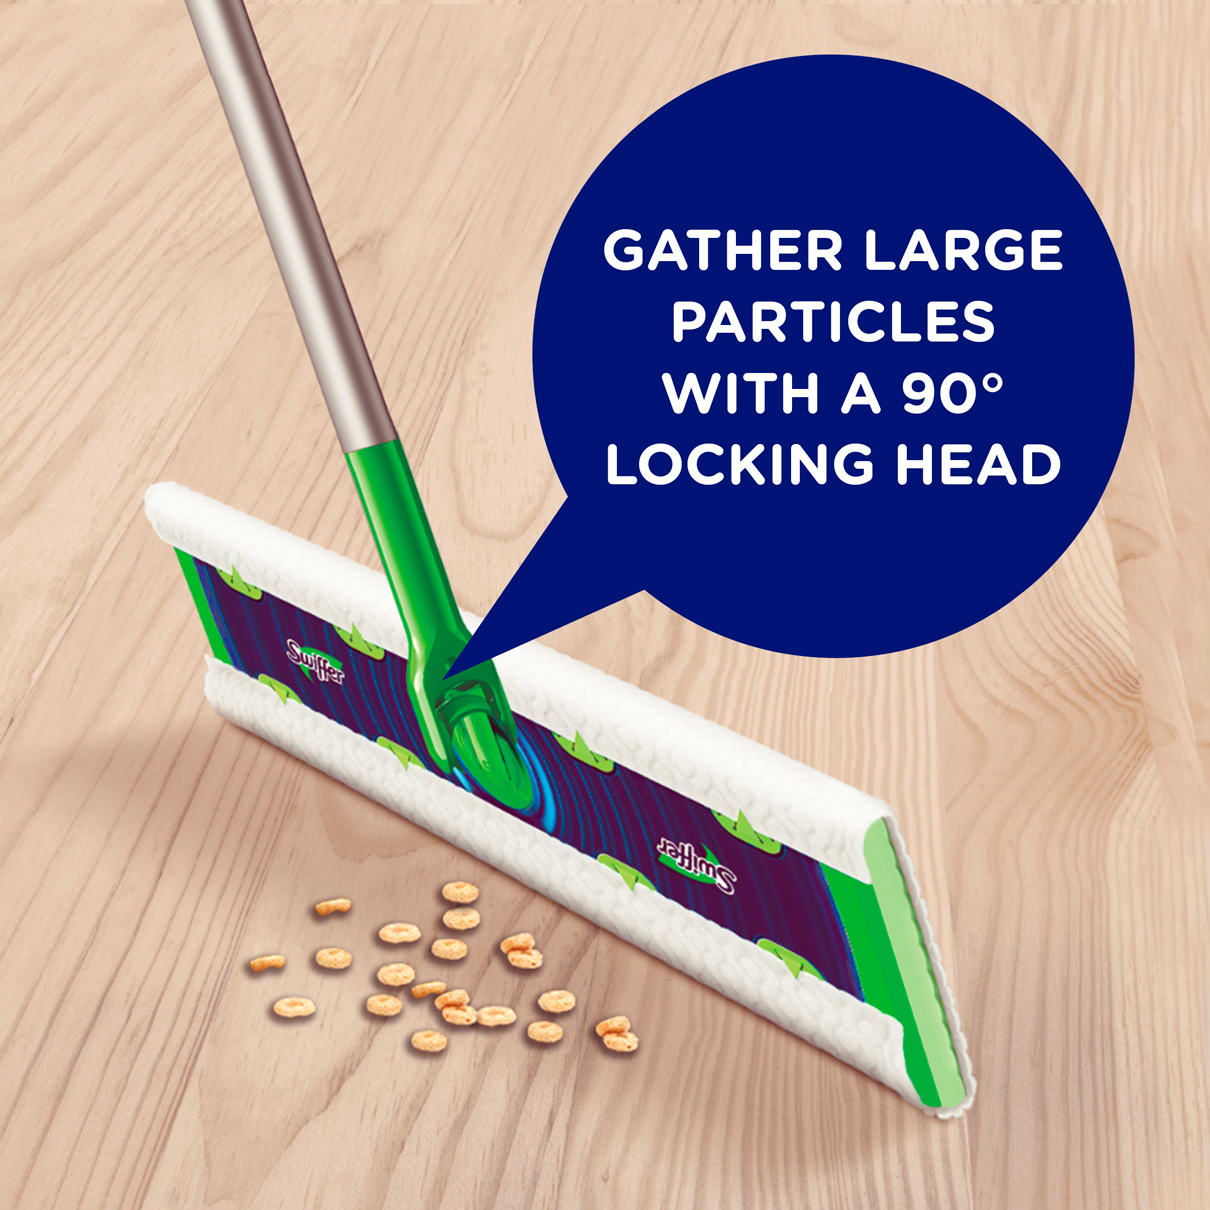 Swiffer Sweeper XL Gathers Large Particles with a 90° Locking Head